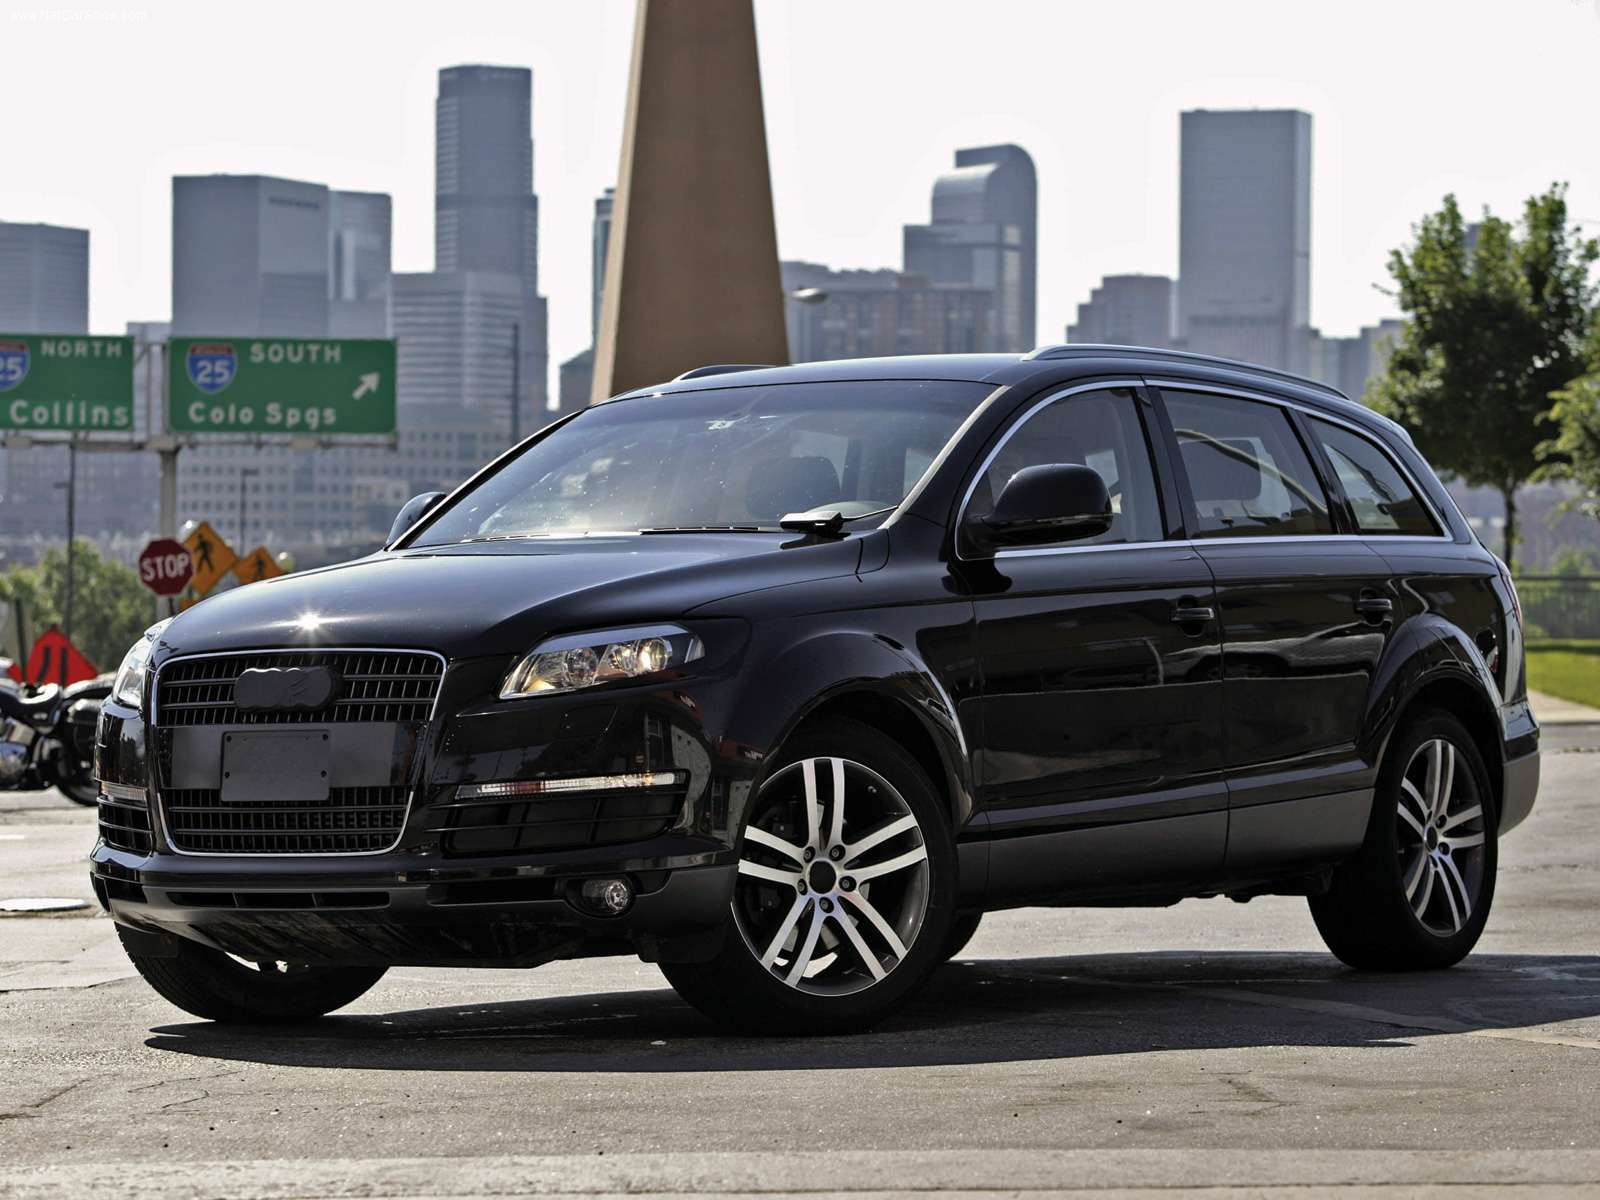 audi q7 2013 car review specification images. Black Bedroom Furniture Sets. Home Design Ideas